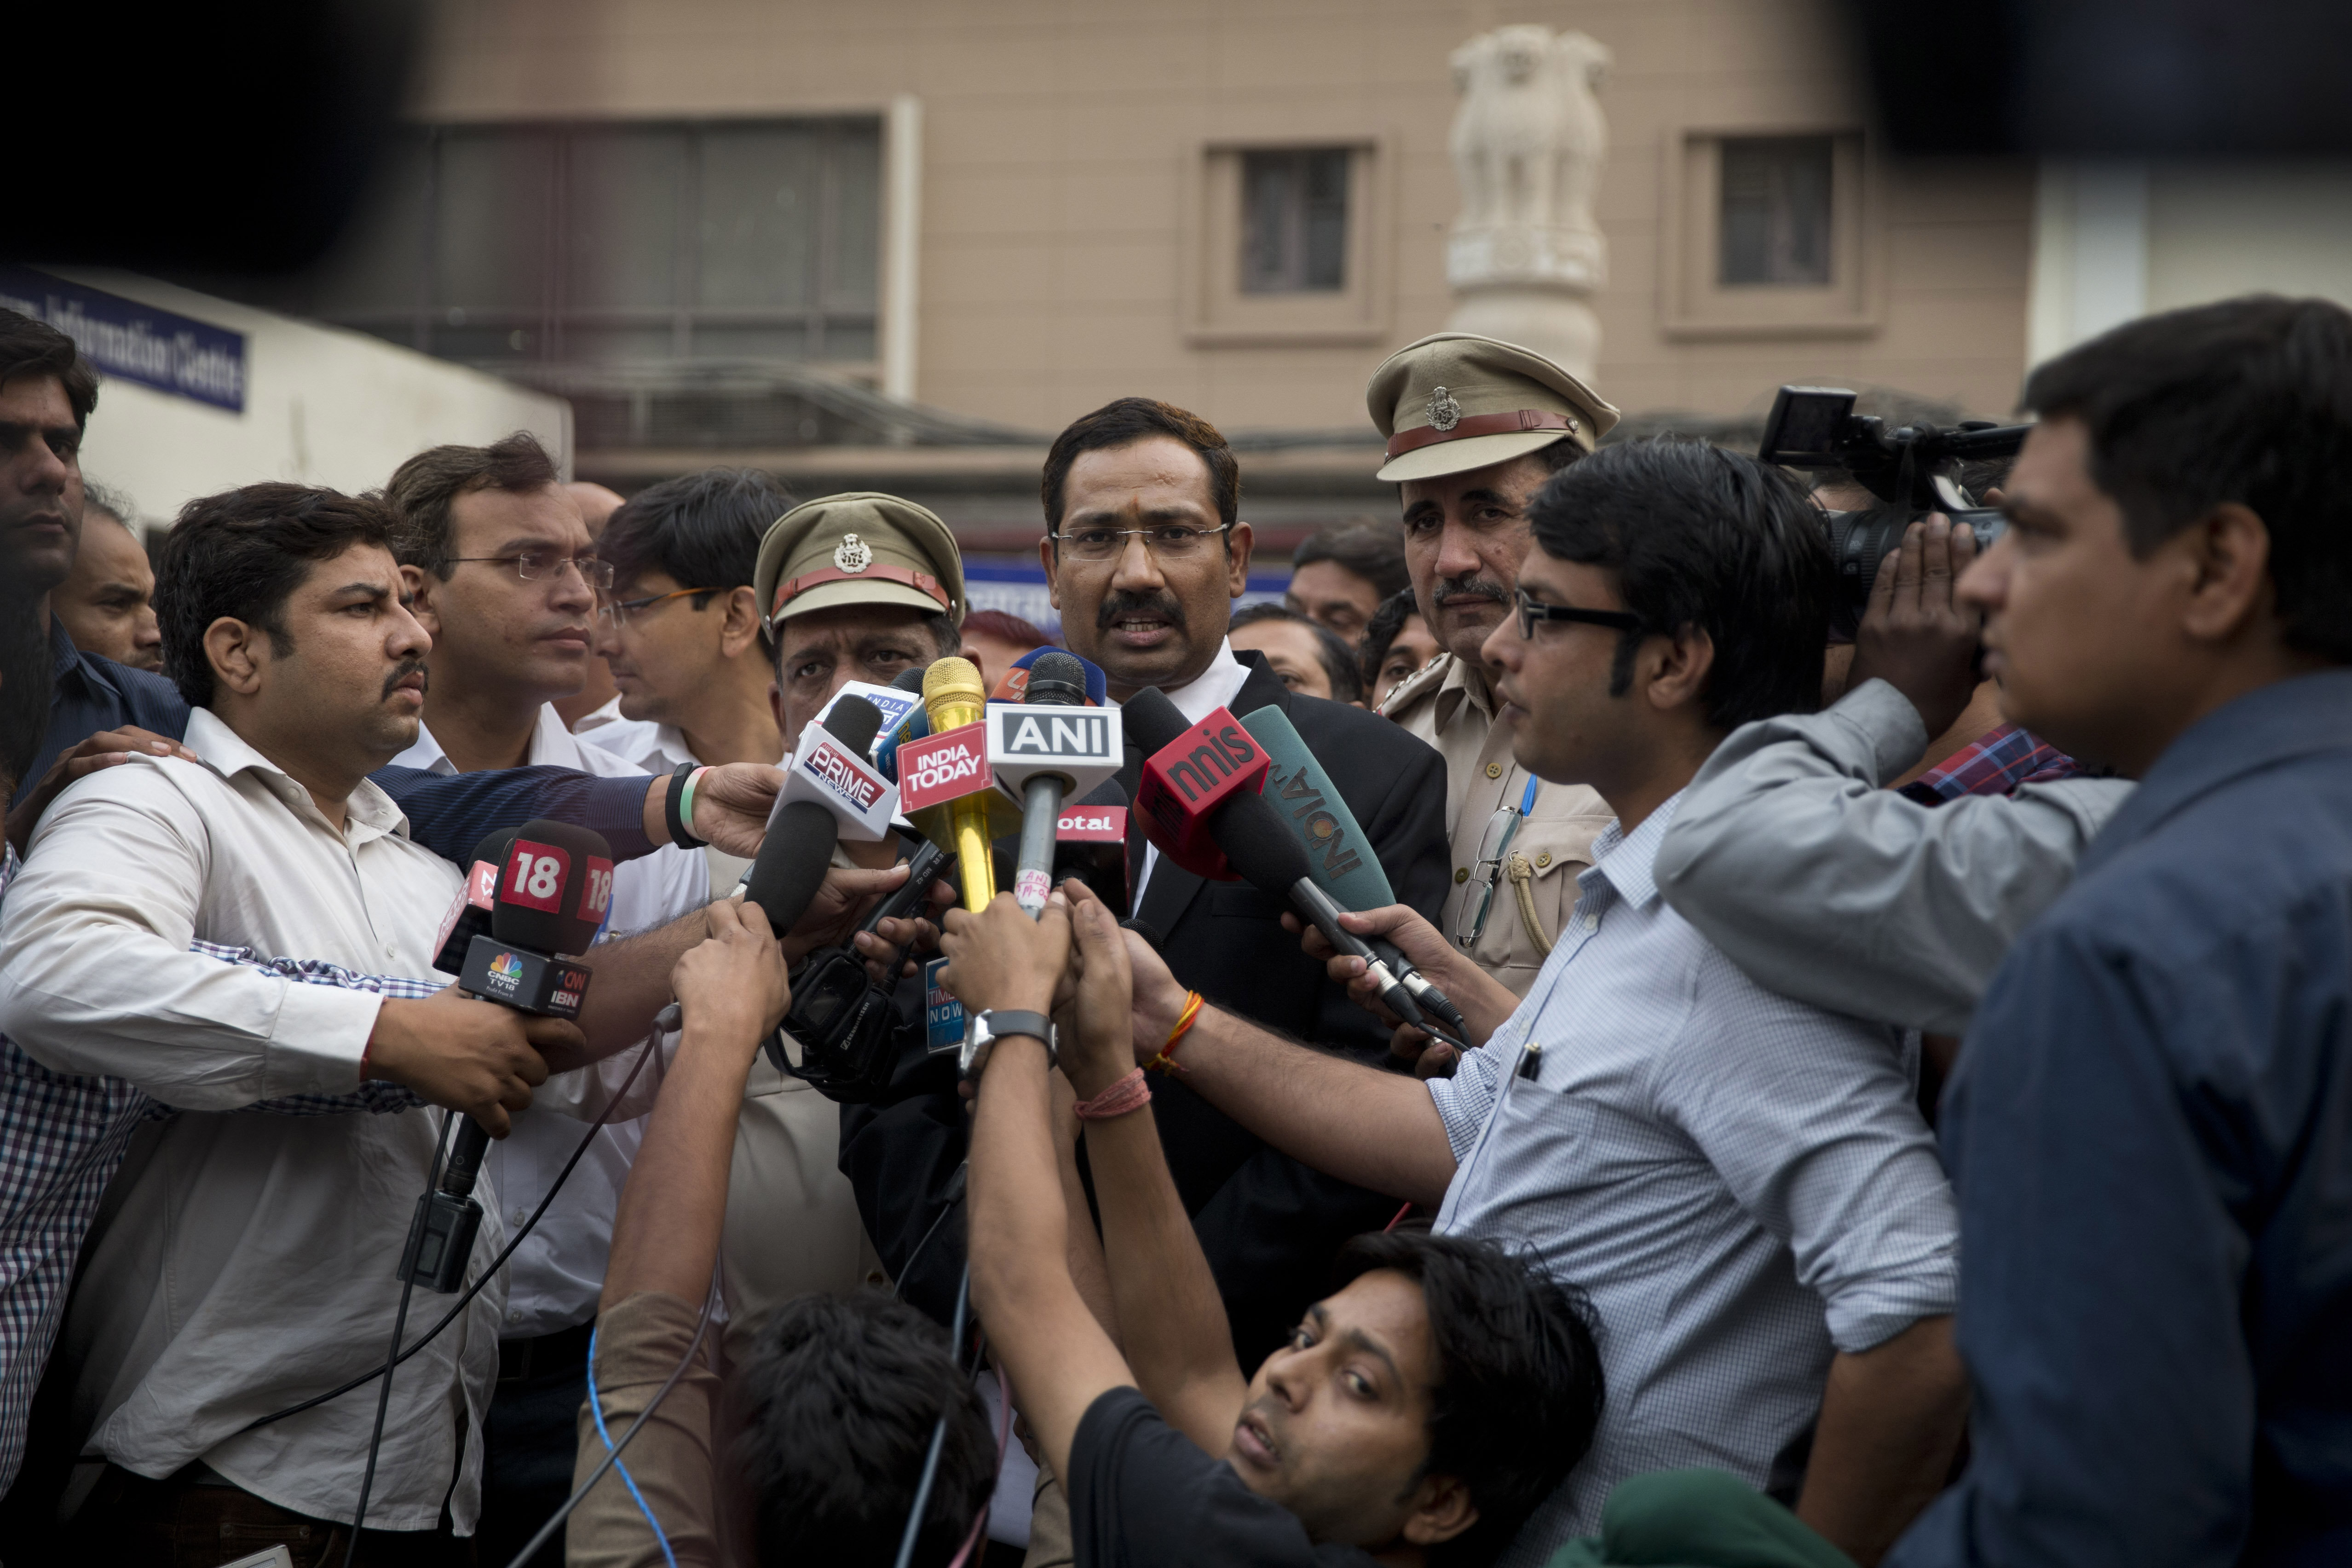 A lawyer, center, speaks to reporters at the Tis Hazari Courts premises, after a court sentence for Uber driver Shiv Kumar Yadav in New Delhi on Tuesday, Nov. 3, 2015. An Indian court sentenced Uber driver Yadav to life in prison Tuesday for raping a passenger in his vehicle last December.